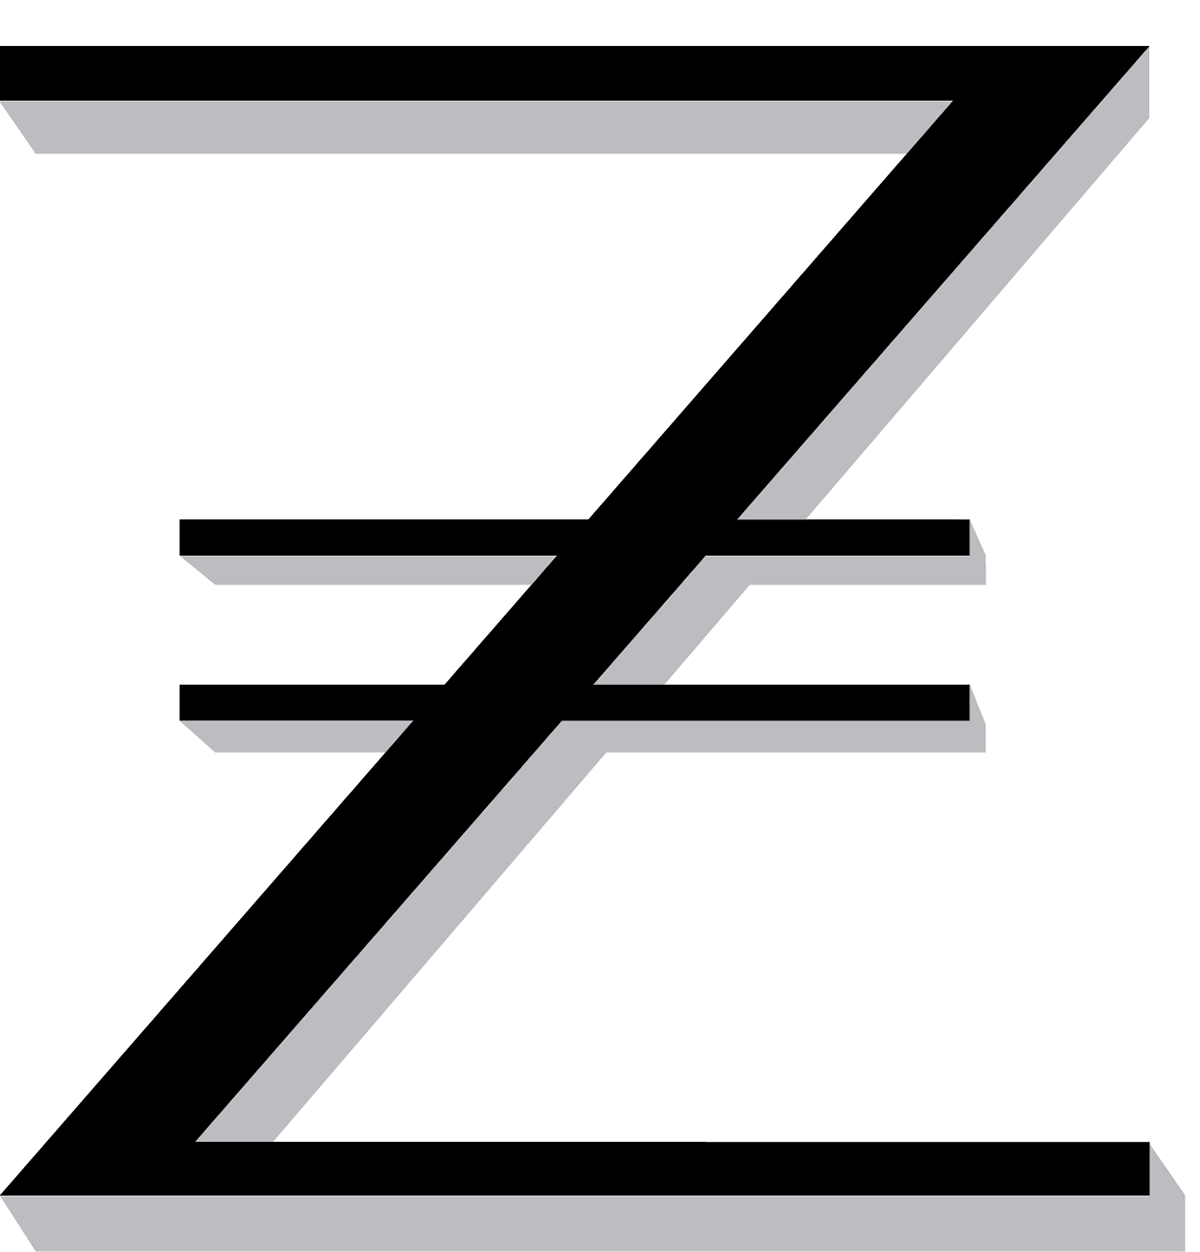 Zoty Currency Symbol Re Design On Pratt Portfolios